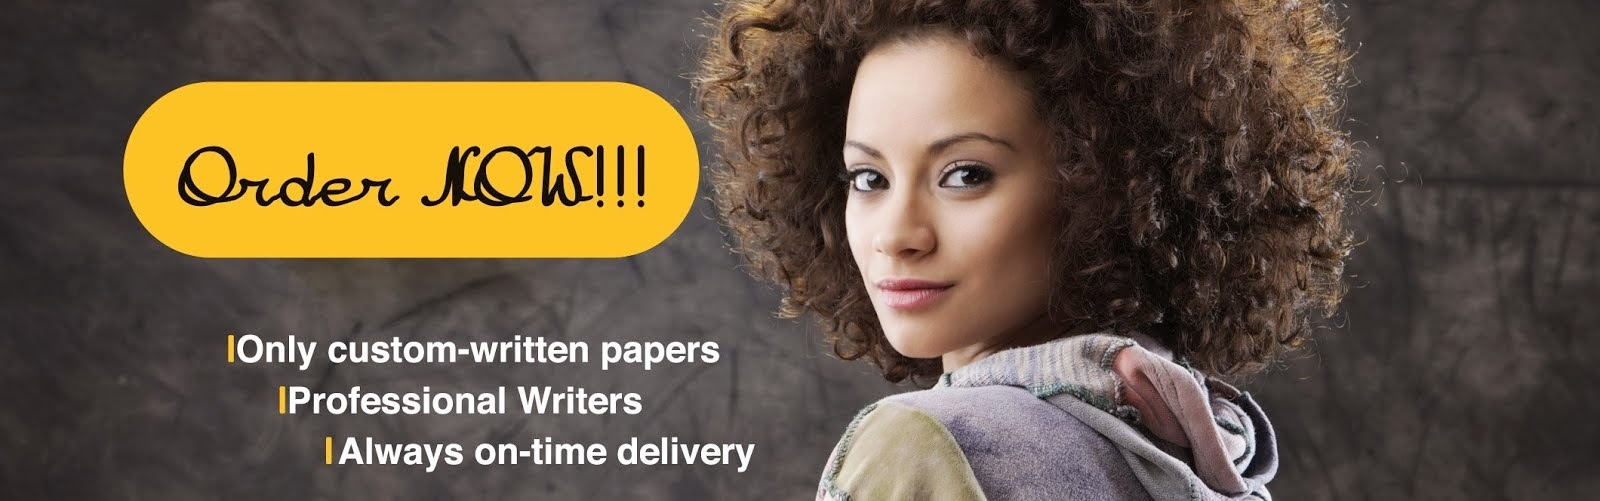 custom essay writings samples from essaycustomizer com many order custom essay now